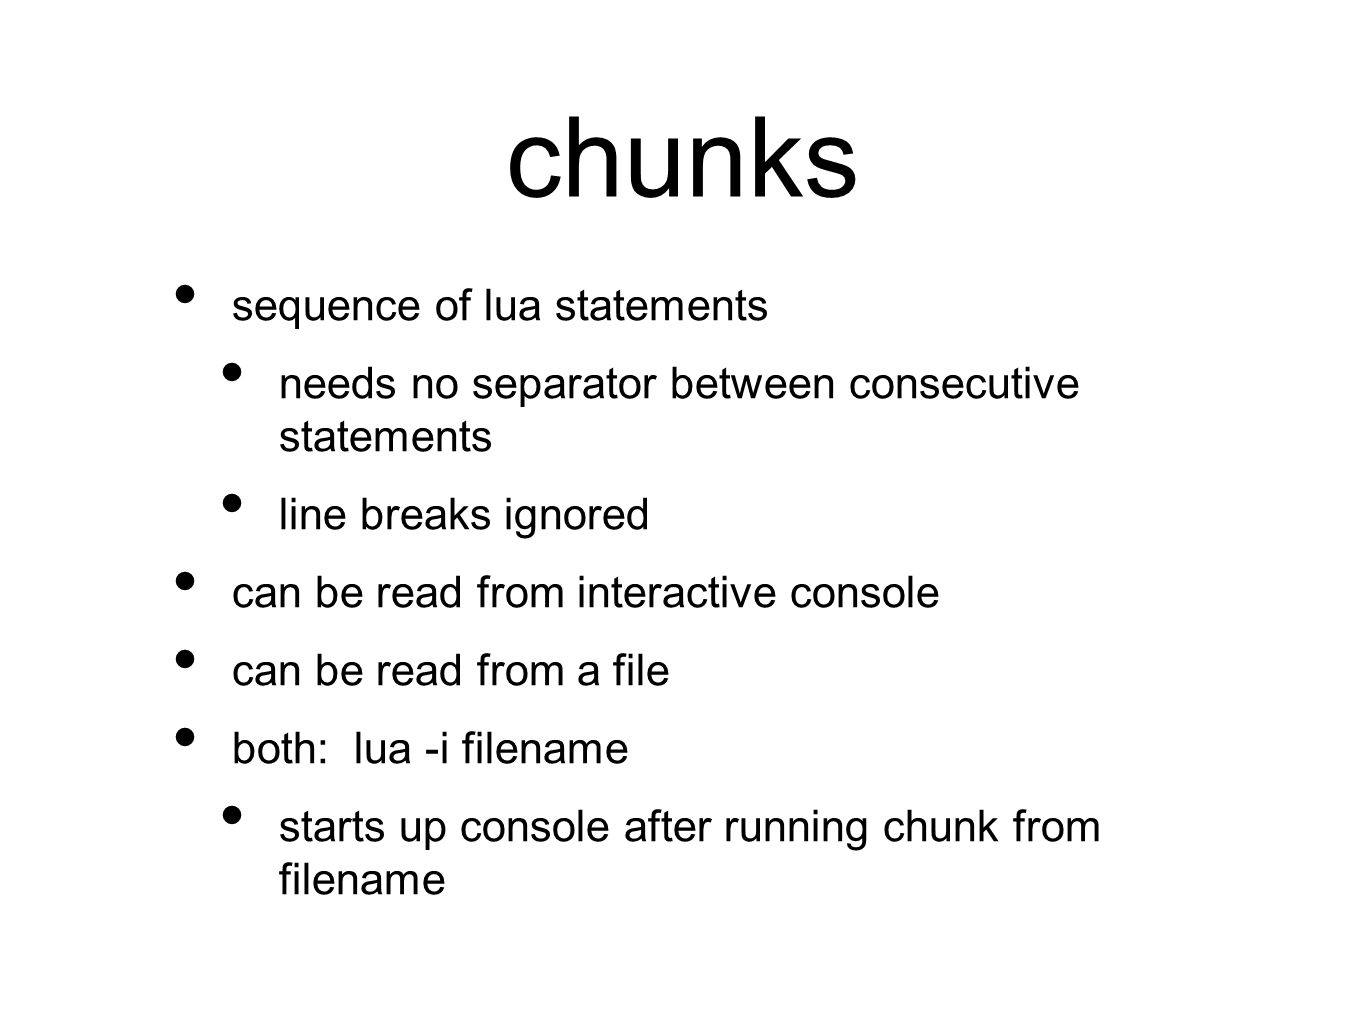 chunks sequence of lua statements needs no separator between consecutive statements line breaks ignored can be read from interactive console can be read from a file both: lua -i filename starts up console after running chunk from filename